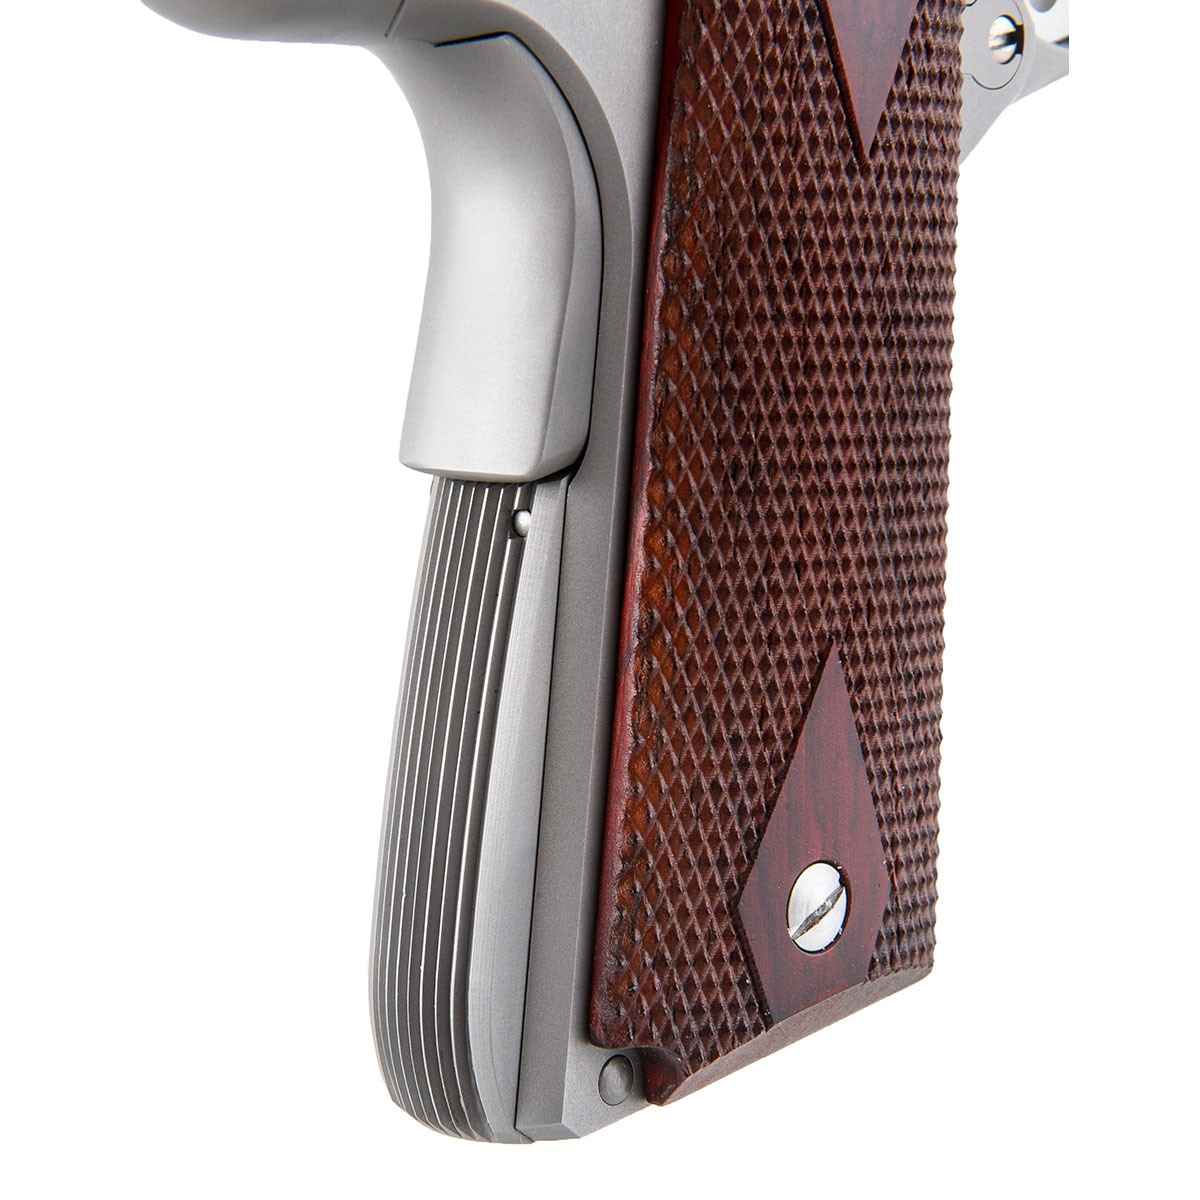 BROWNELLS BRN-1911® RETRO CUSTOM GOVERNMENT 5